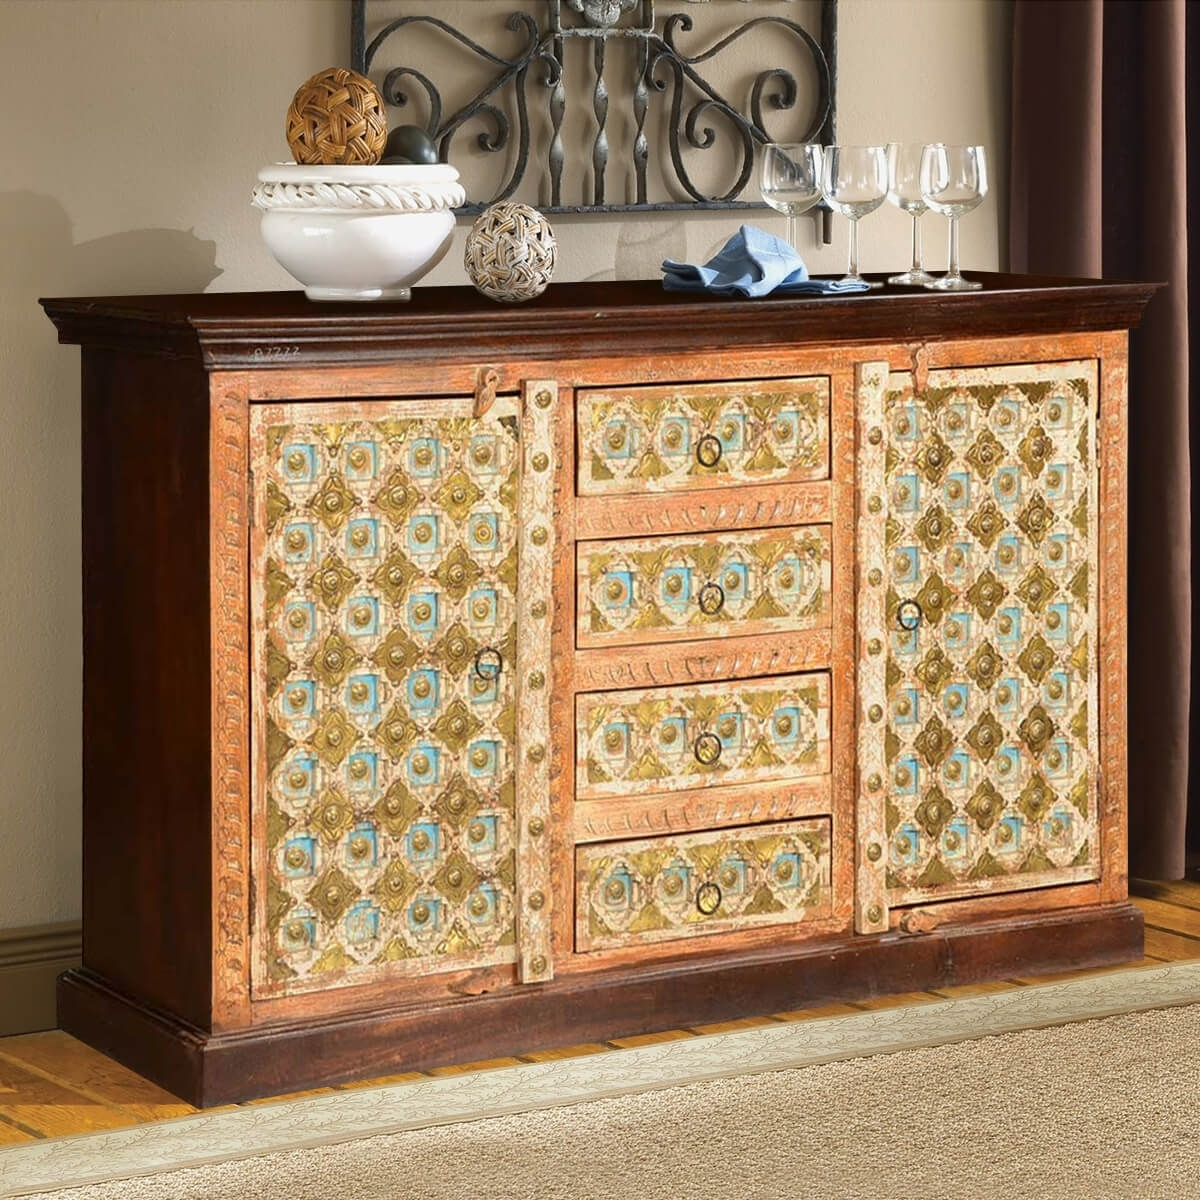 Turkish Handcrafted Brass Inlay Mango Wood 4 Drawer Sideboard Cabinet throughout Open Shelf Brass 4-Drawer Sideboards (Image 22 of 30)